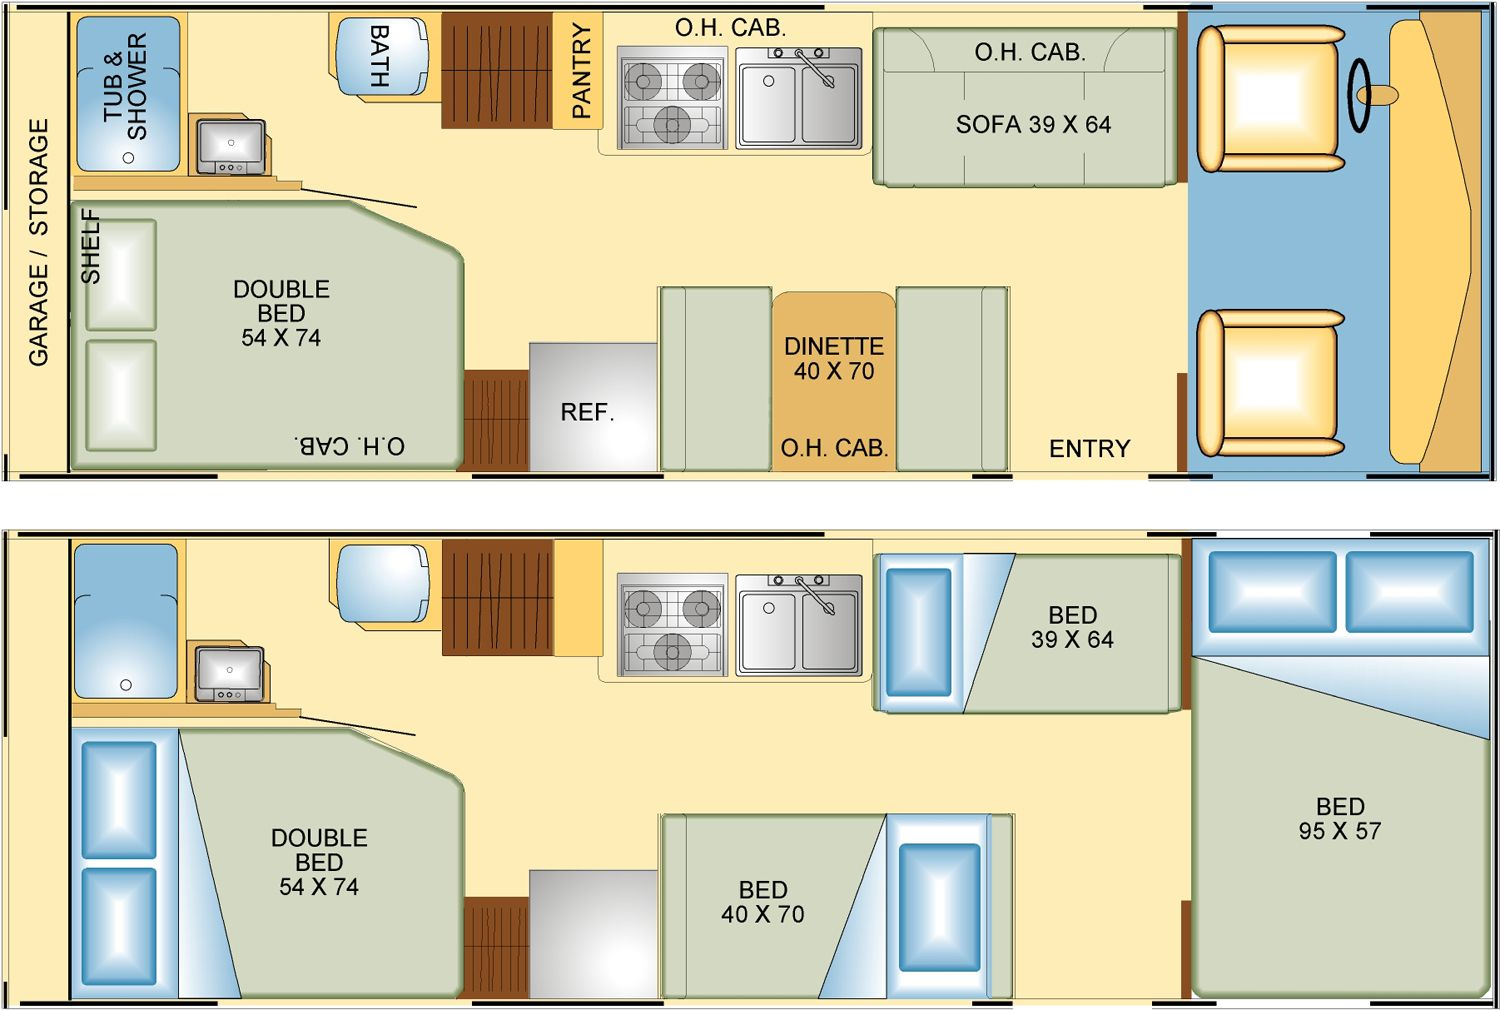 Cool RV Floor Plans Additionally Class A RV With Bunk Beds Floor Plans